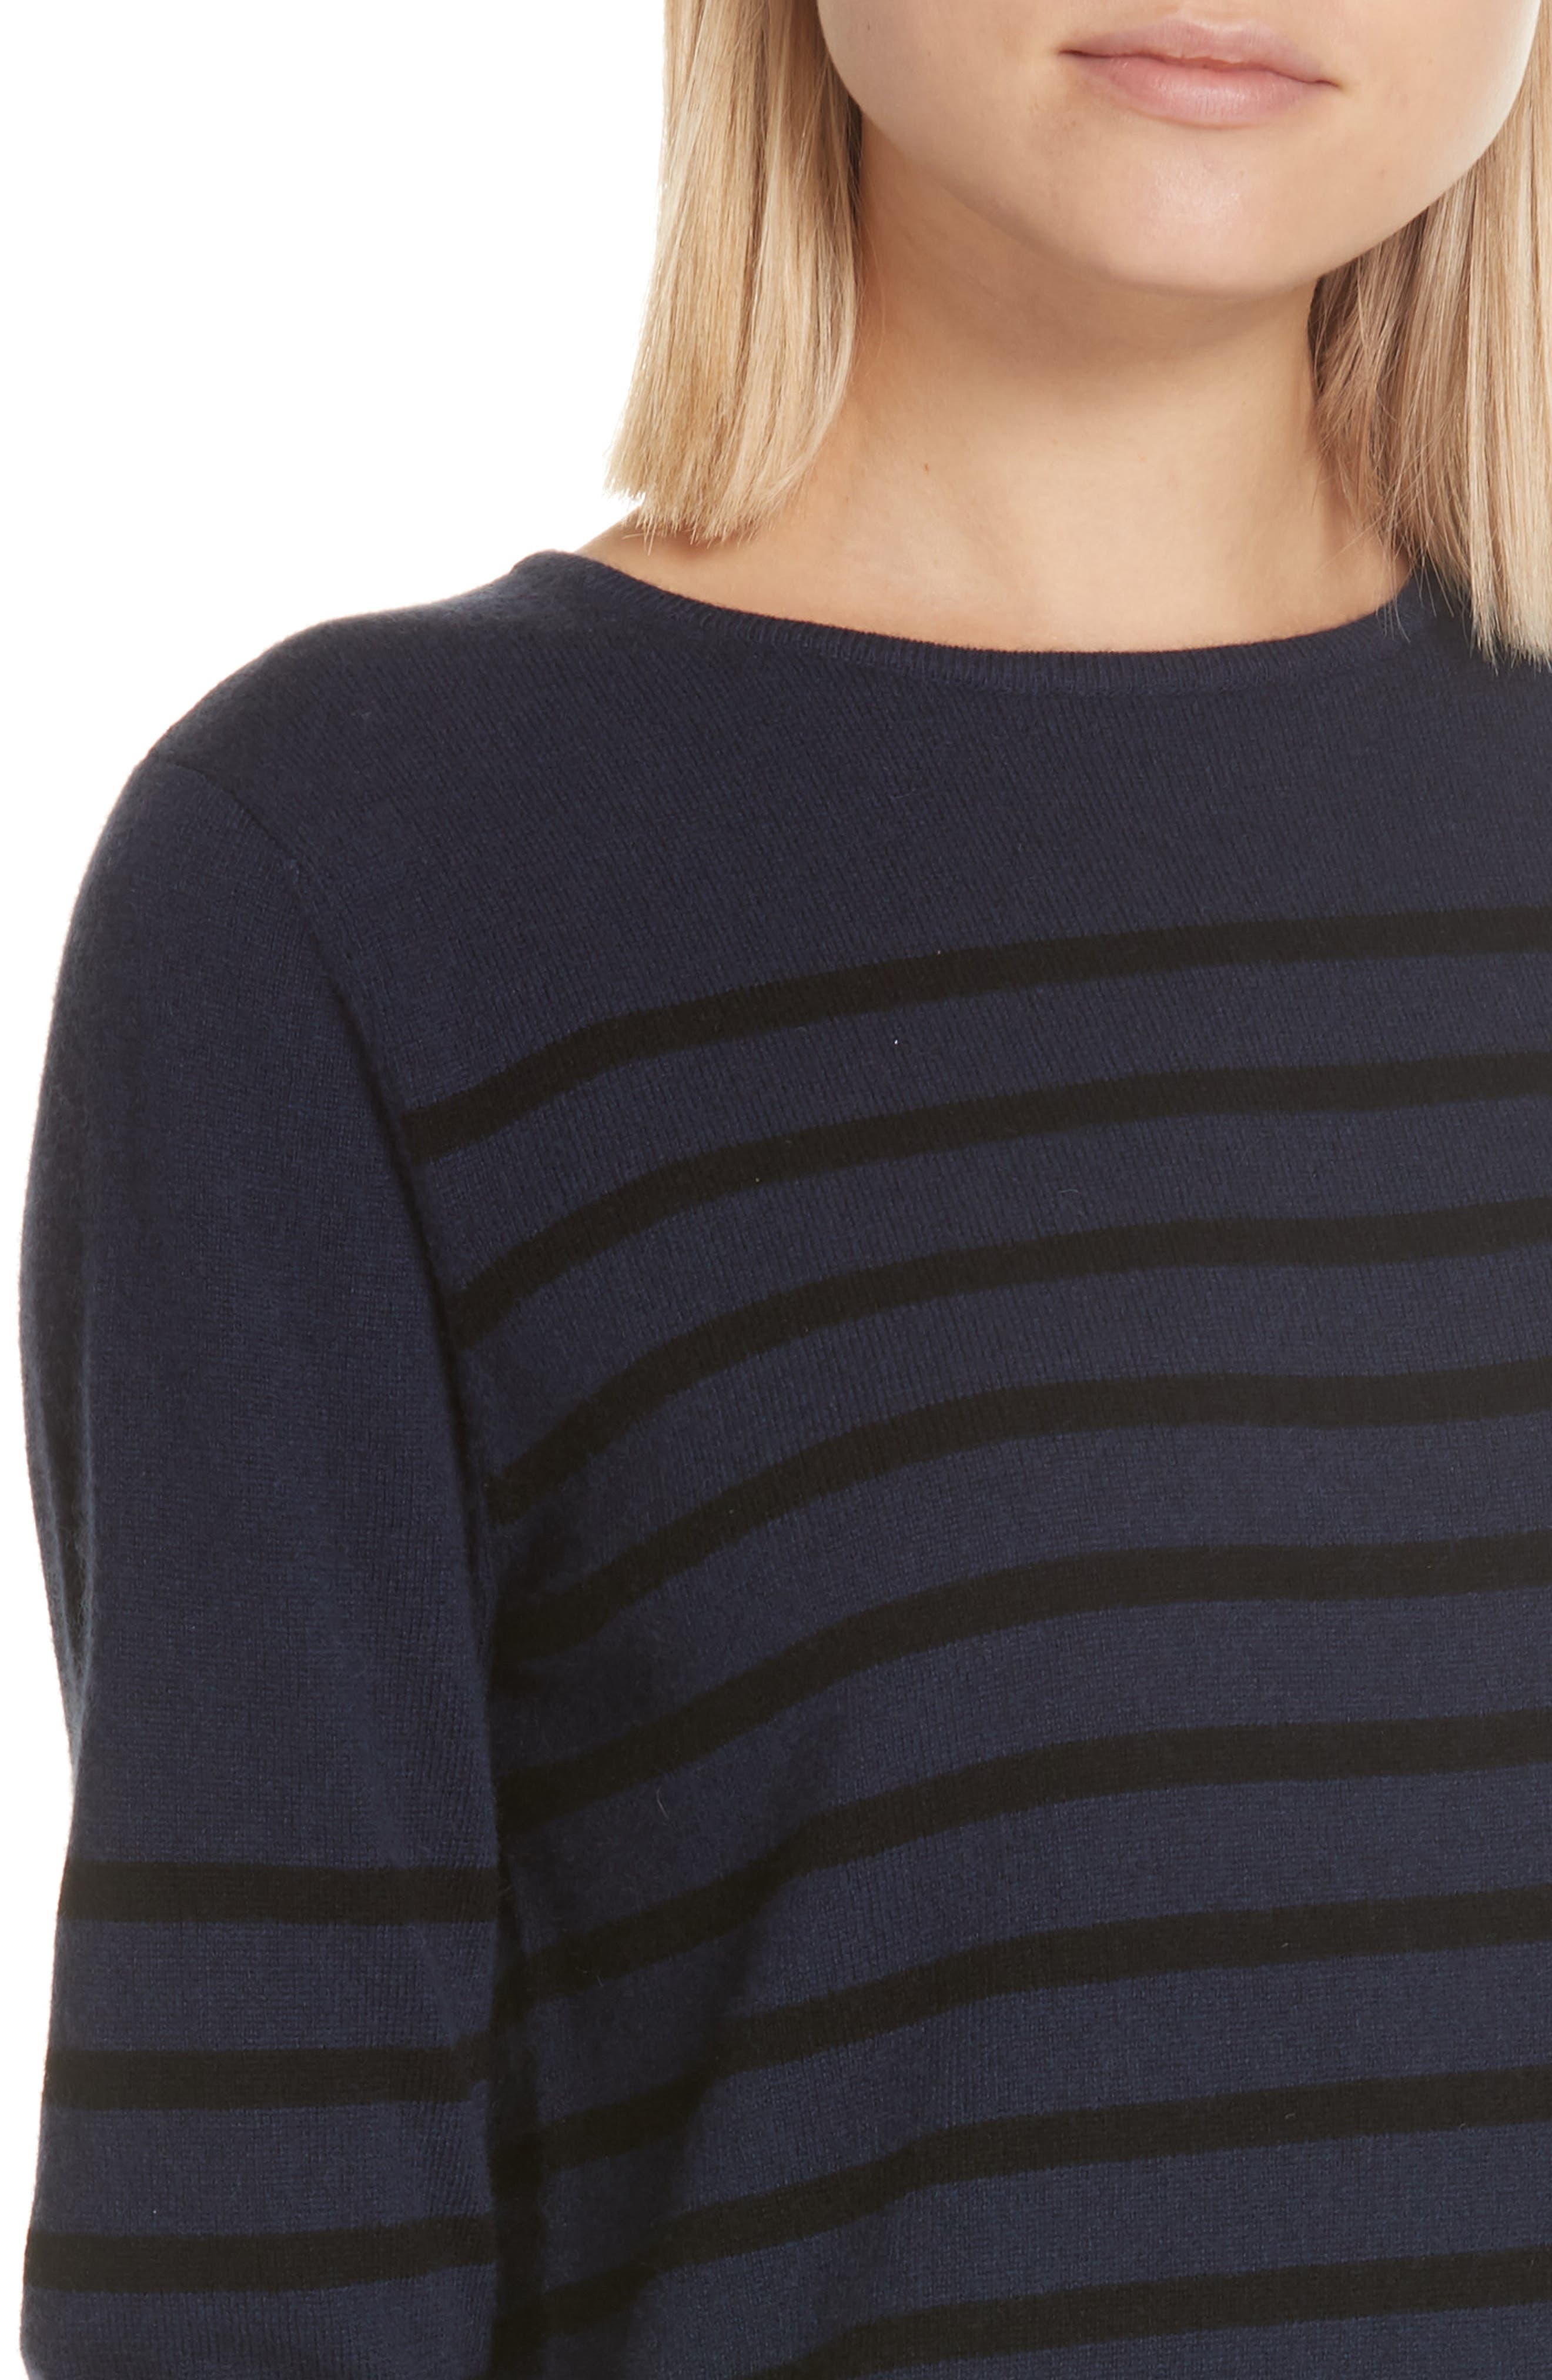 Stripe Wool & Cashmere Sweater Dress,                             Alternate thumbnail 4, color,                             NAVY/ BLACK